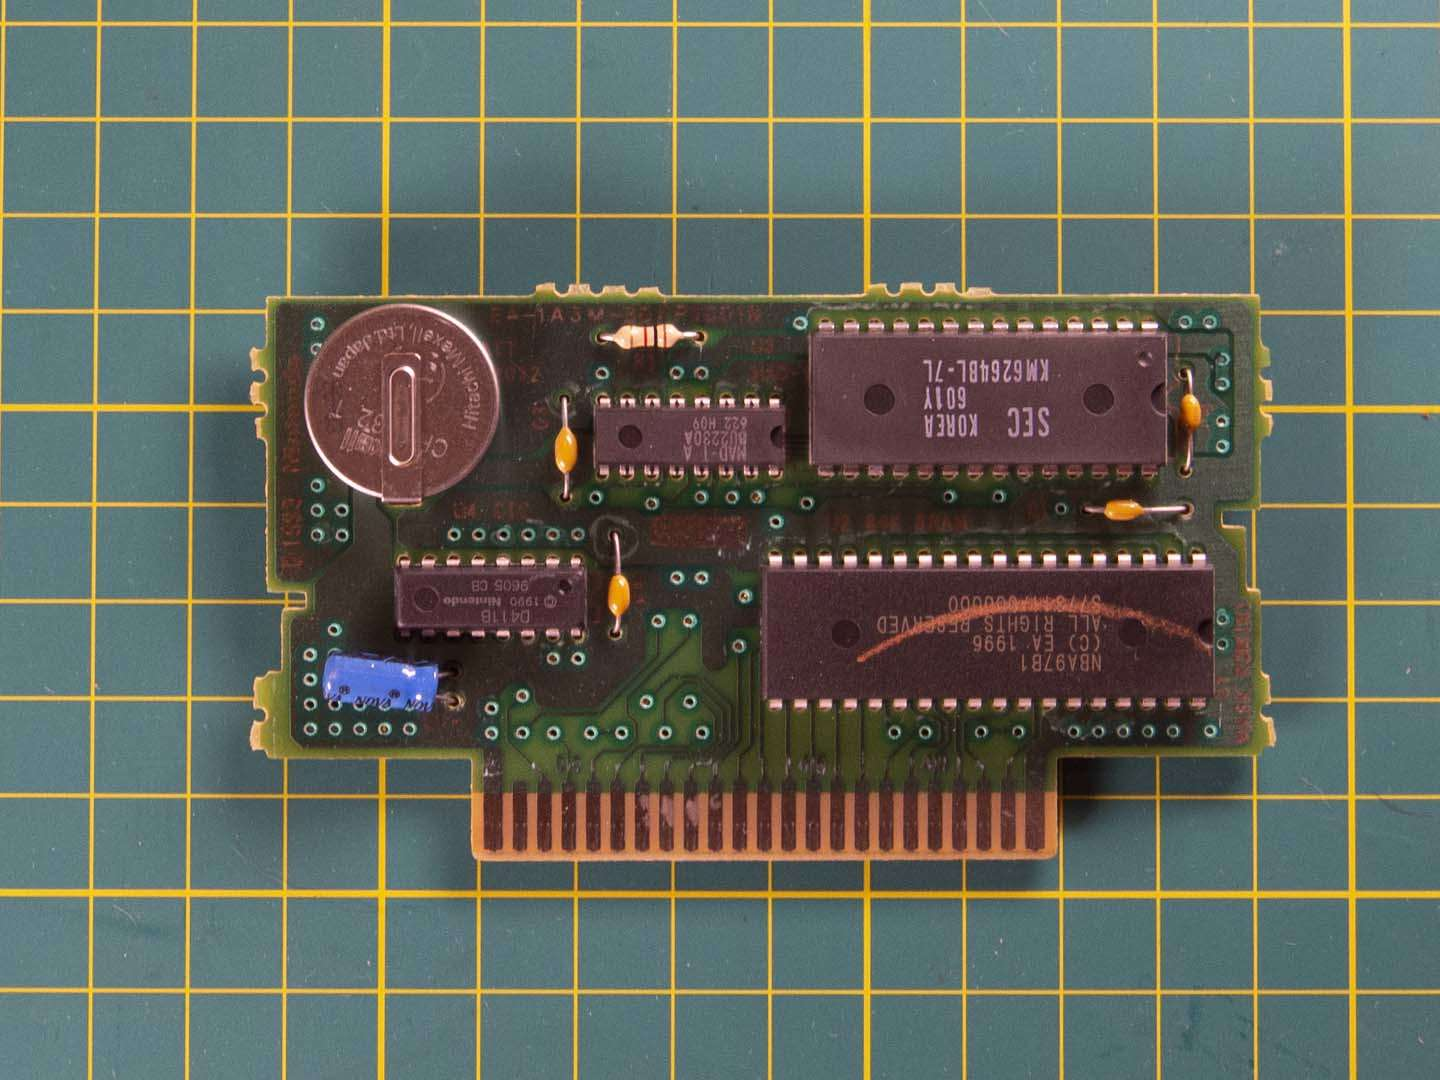 SNES cartridge board